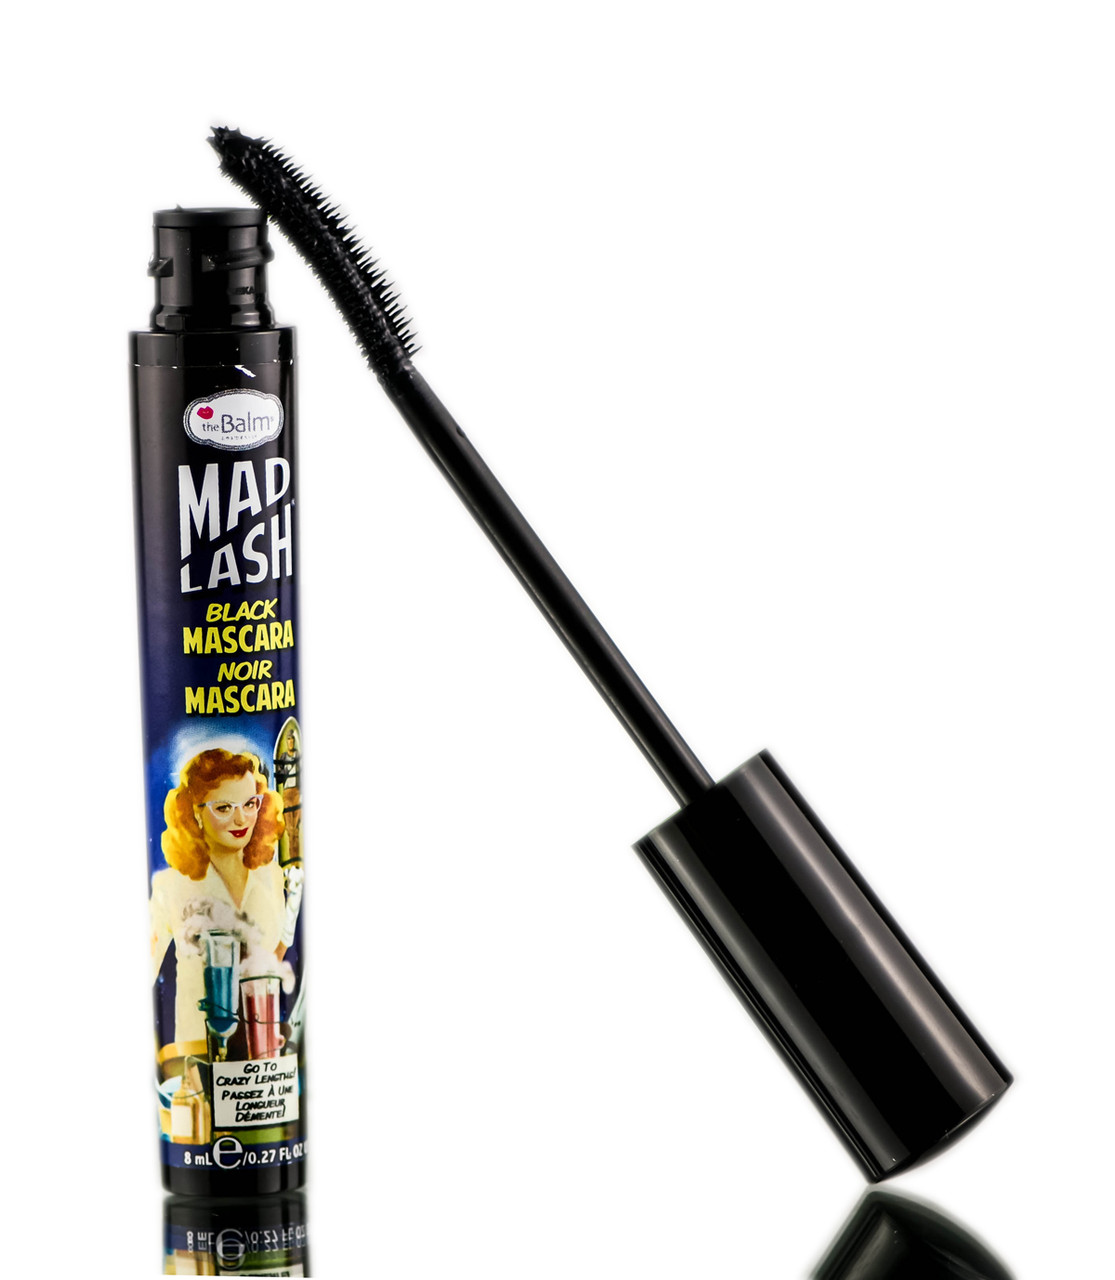 a6667114d91 theBalm Mad Lash Mascara - SleekShop.com (formerly Sleekhair) - Black